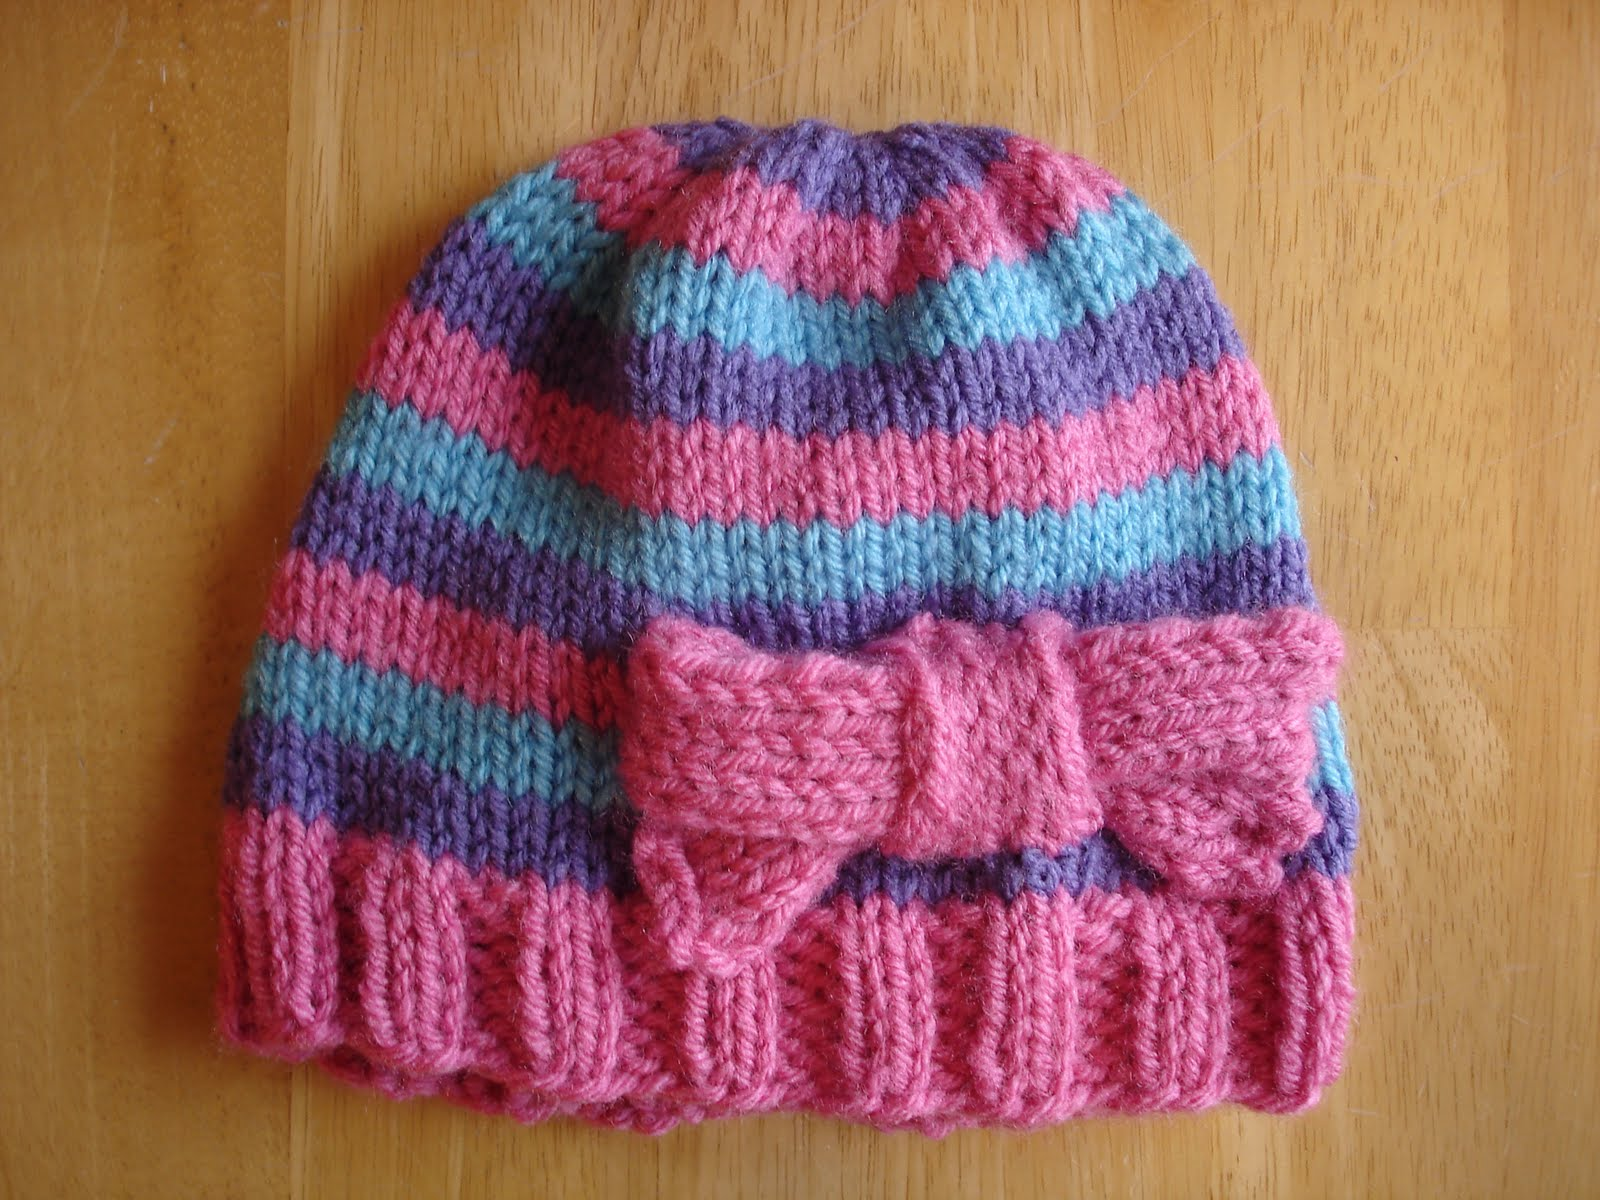 Free Knitted Baby Hat Patterns : Fiber Flux: Free Knitting Pattern...Super Pink Toddler Hat!